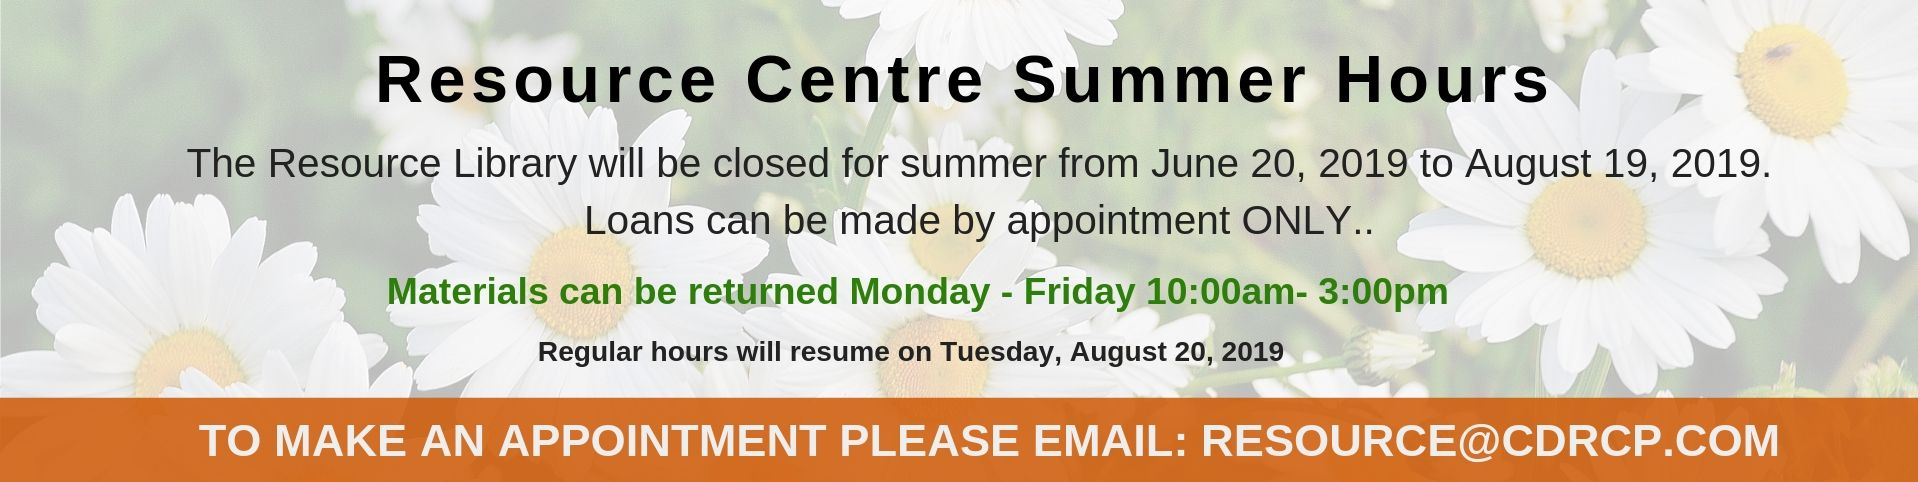 Resource Centre Summer Hours